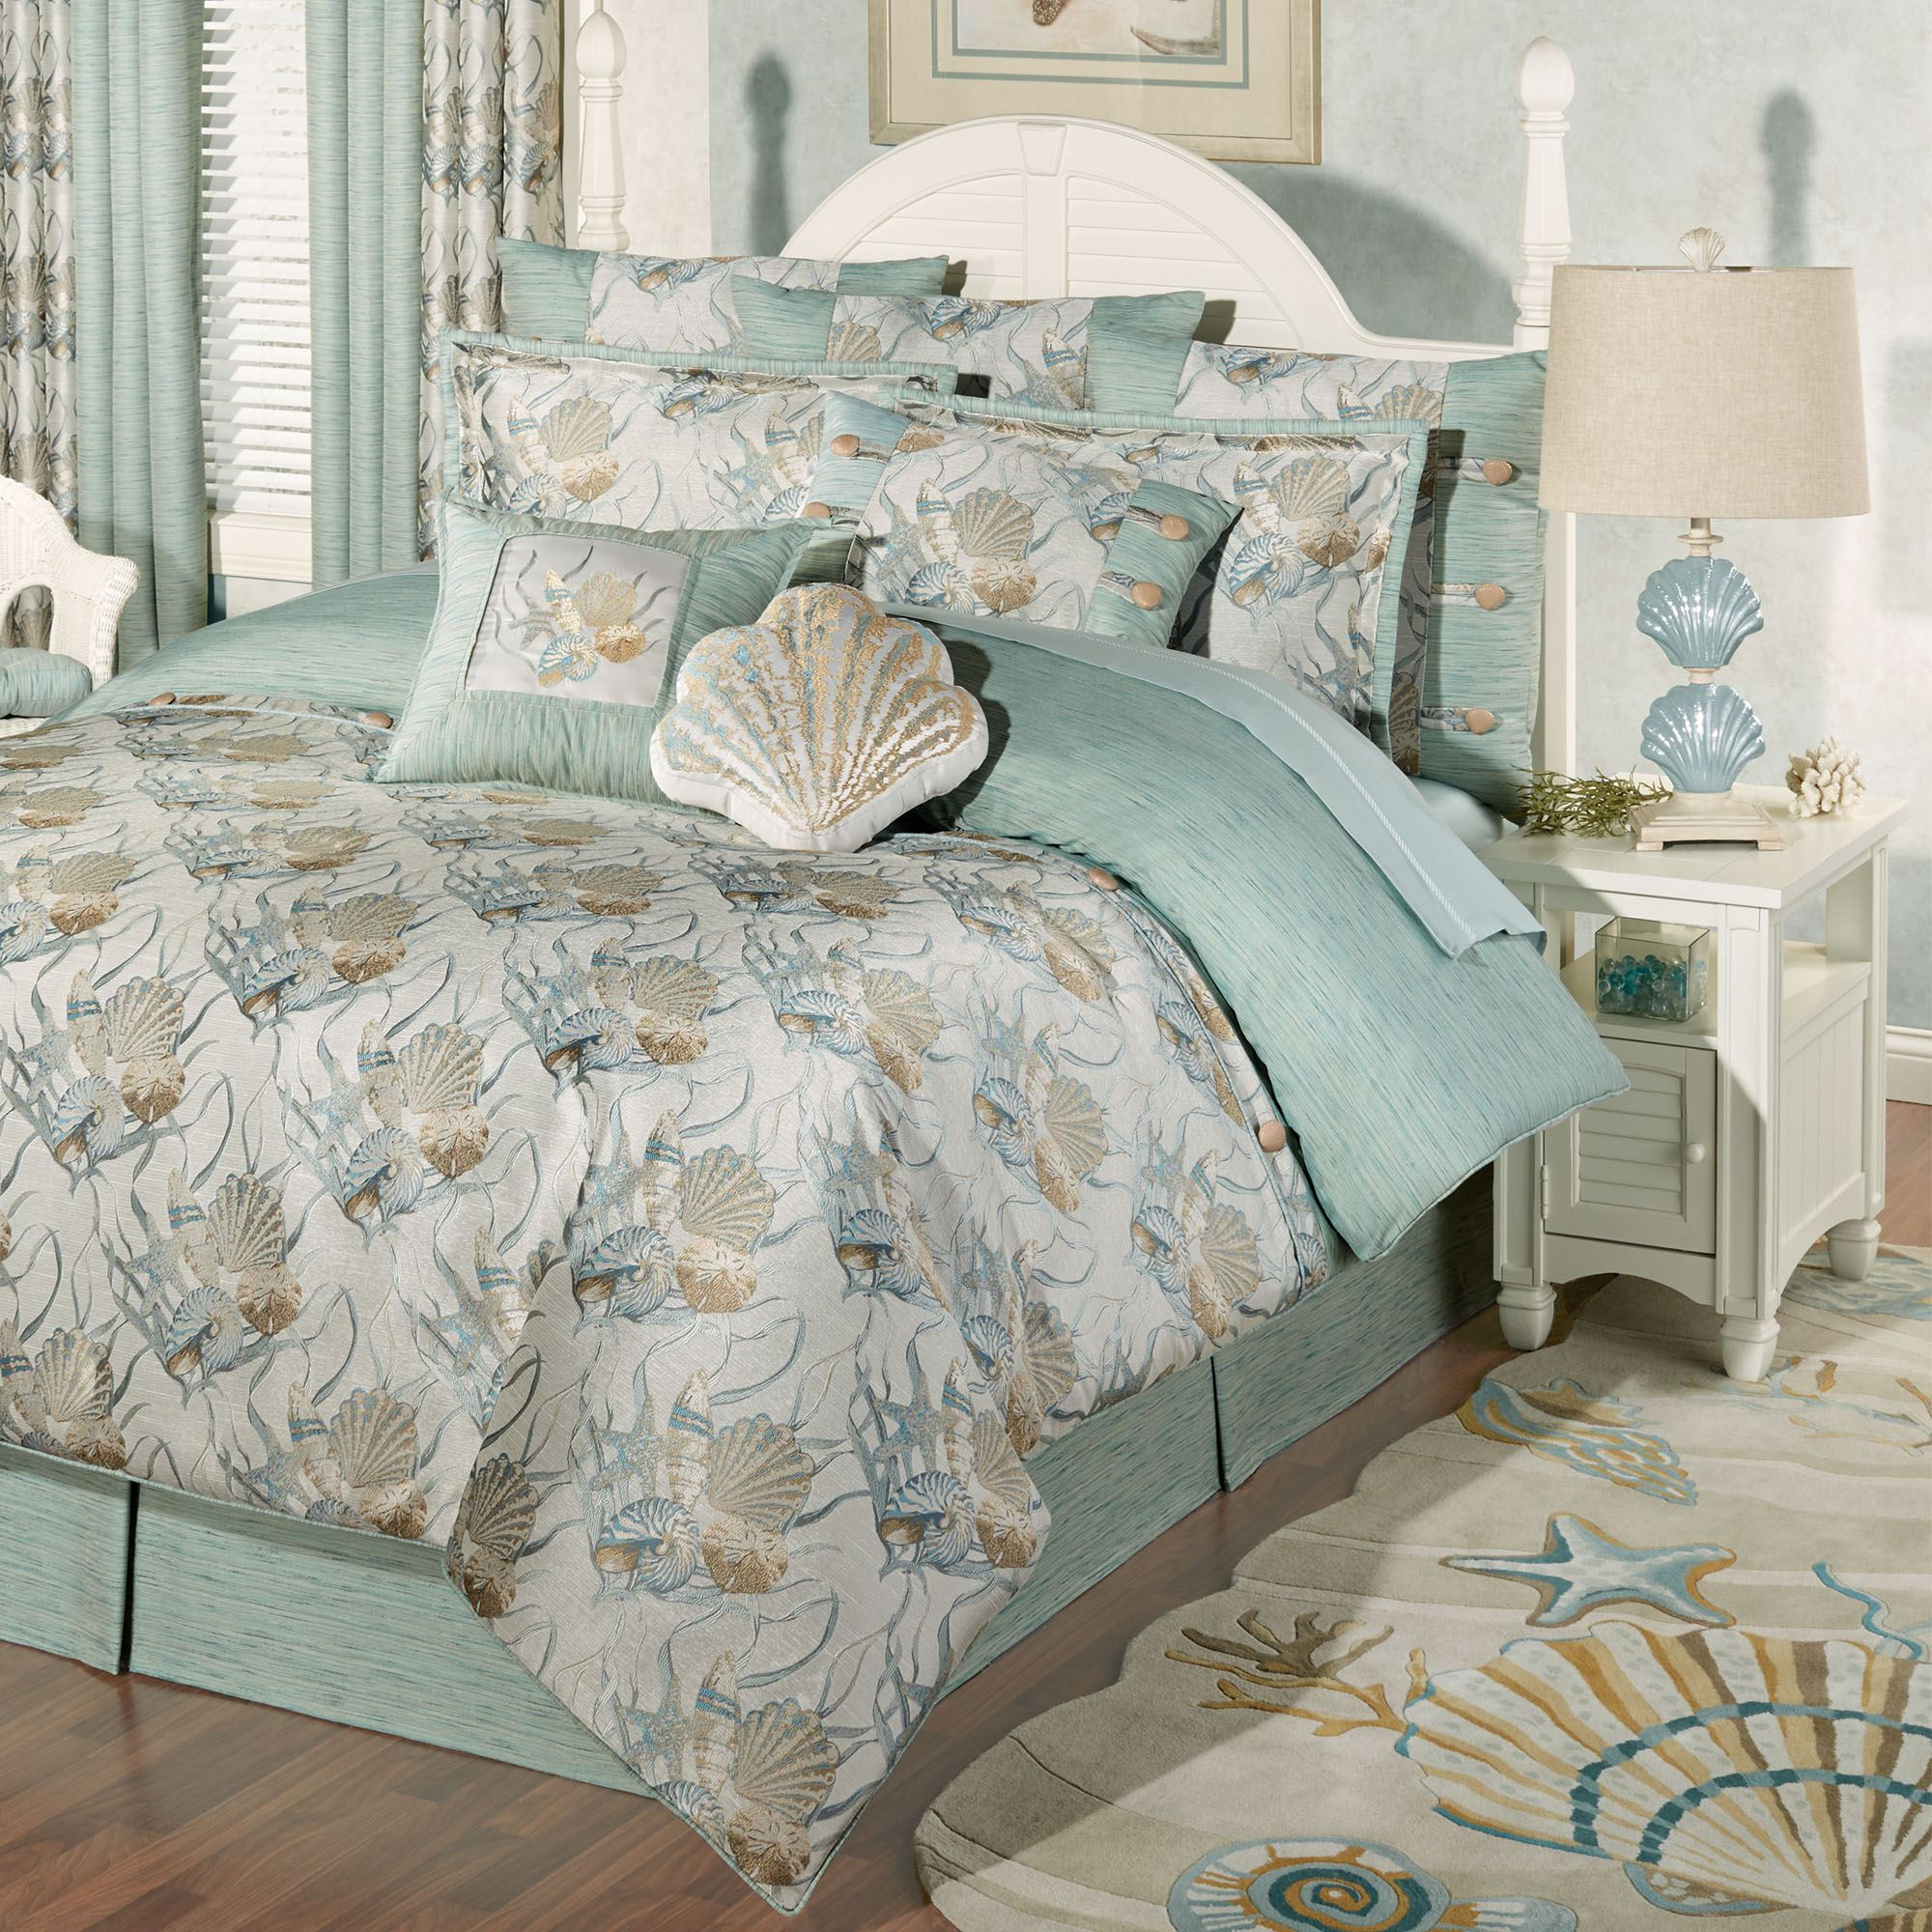 Coastal Dream Seashell Comforter Bedding